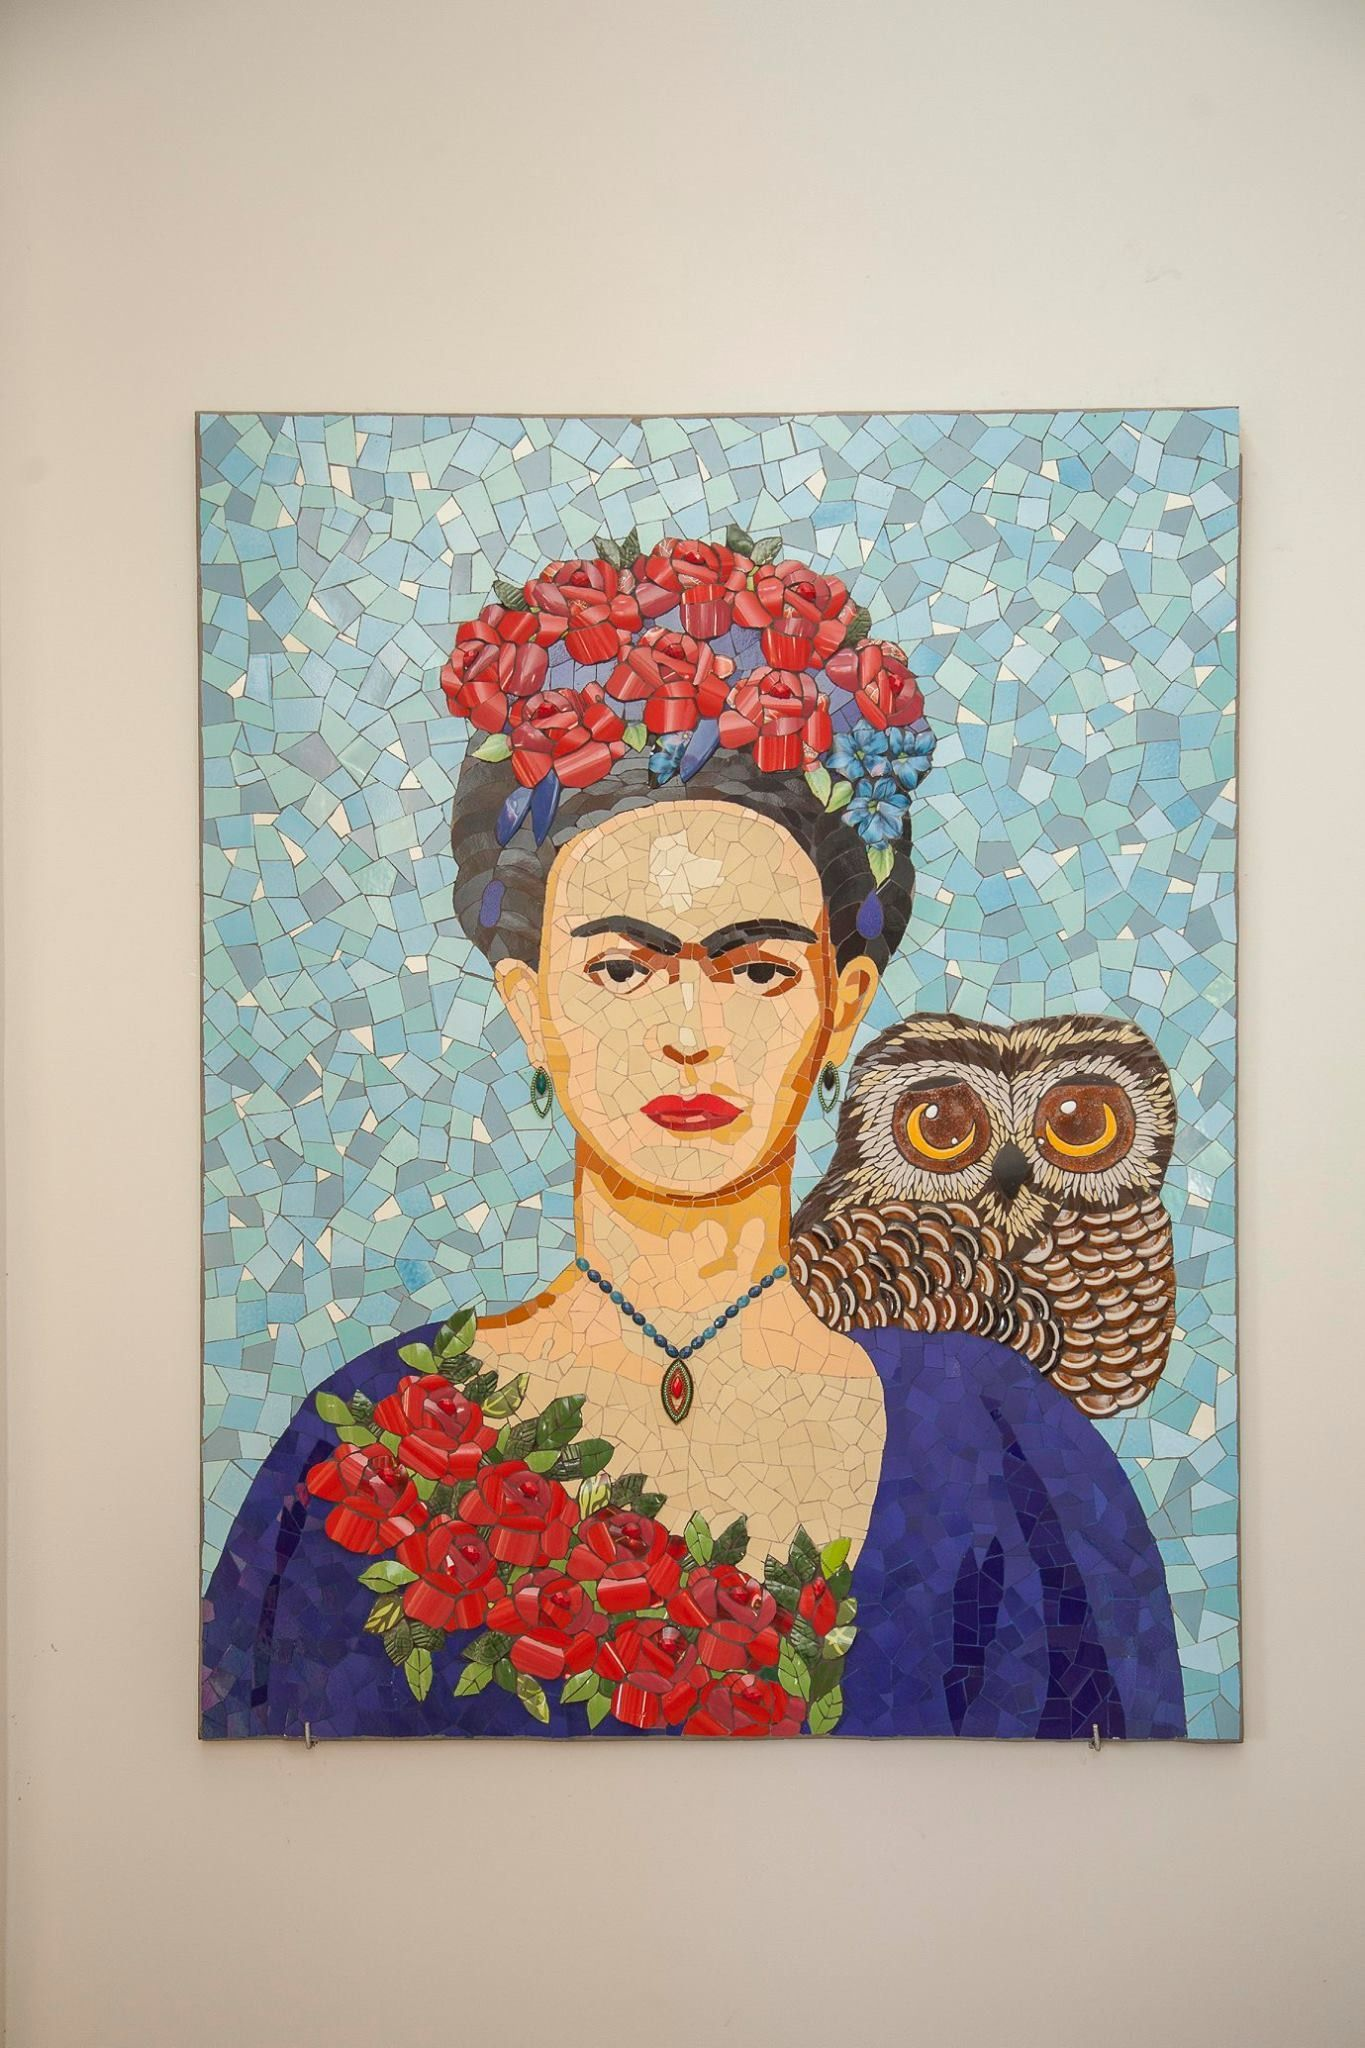 frida kahlo mosaico picassiette by andrea olighon mosaic art mosaik. Black Bedroom Furniture Sets. Home Design Ideas